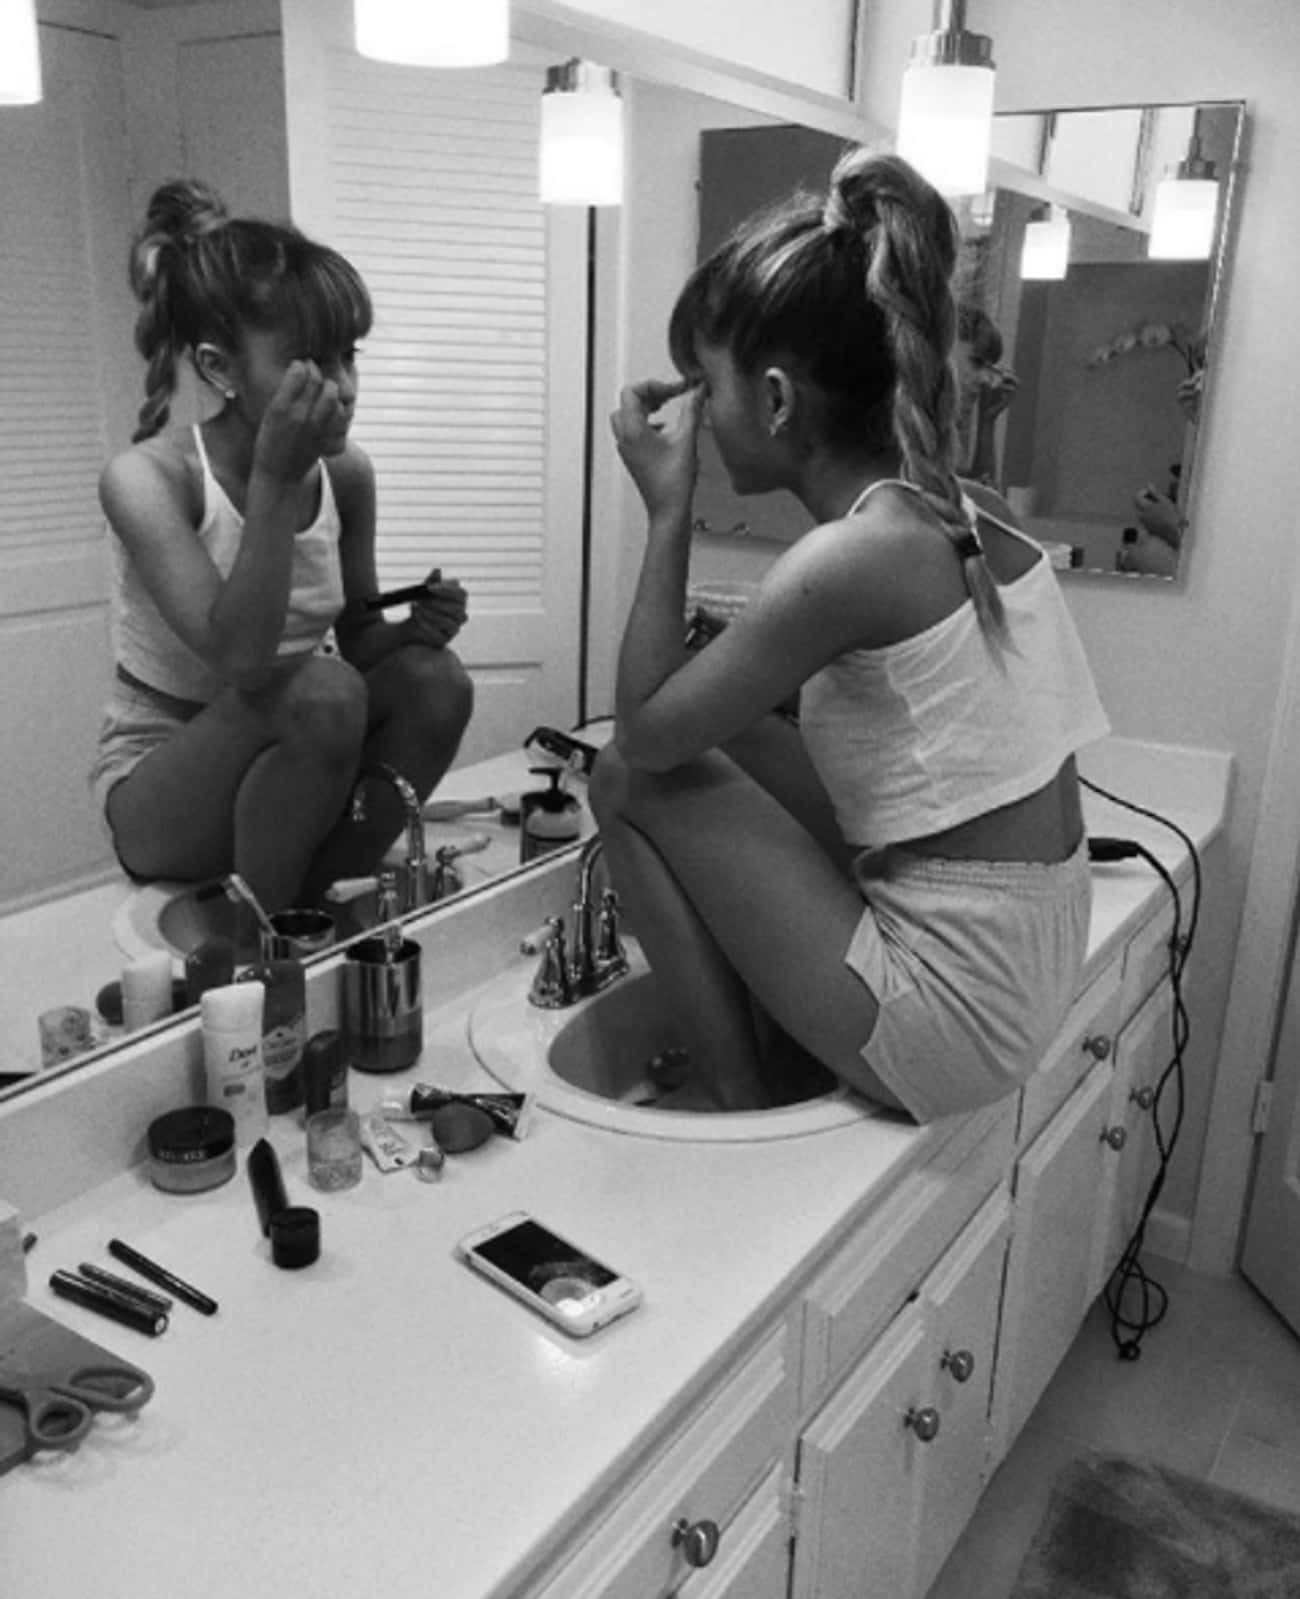 Ariana Grande Gets Up Close An is listed (or ranked) 2 on the list These Celebs Do Their Own Makeup And Here Are Some Of Their Go-To Beauty Tips